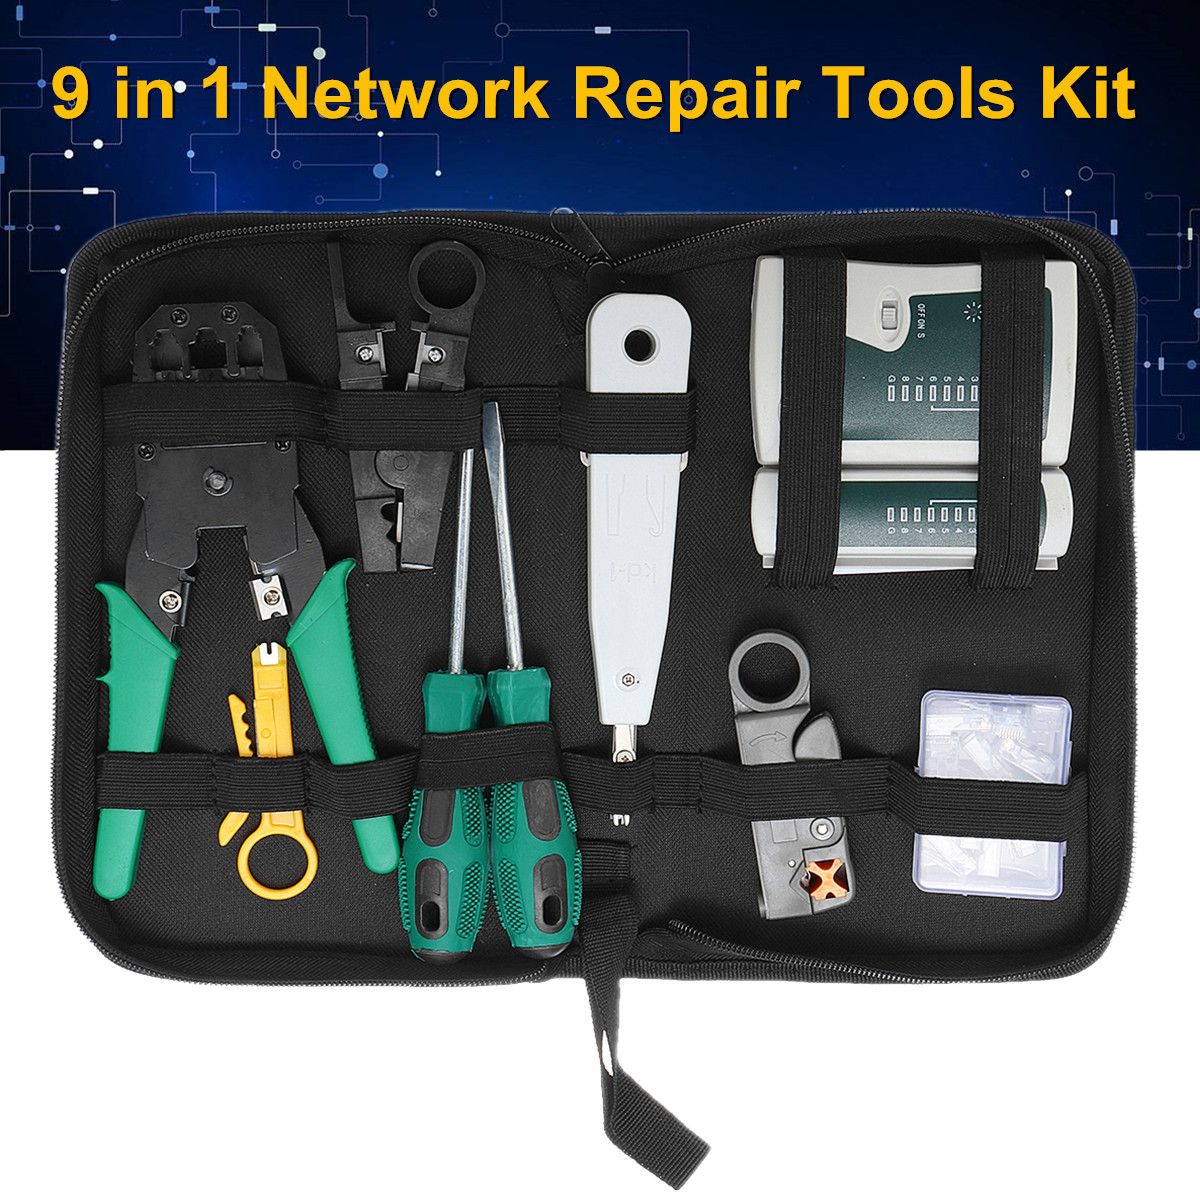 Repair Cable Tester Crimper Plier Hand Tool Kit 9 in1 LAN Network Cat5 RJ45 RJ11 RJ12 Stripping Make Ethernet Connector Test yoc hot network lan cable tester rj45 rj11 rj12 cat5 crimper